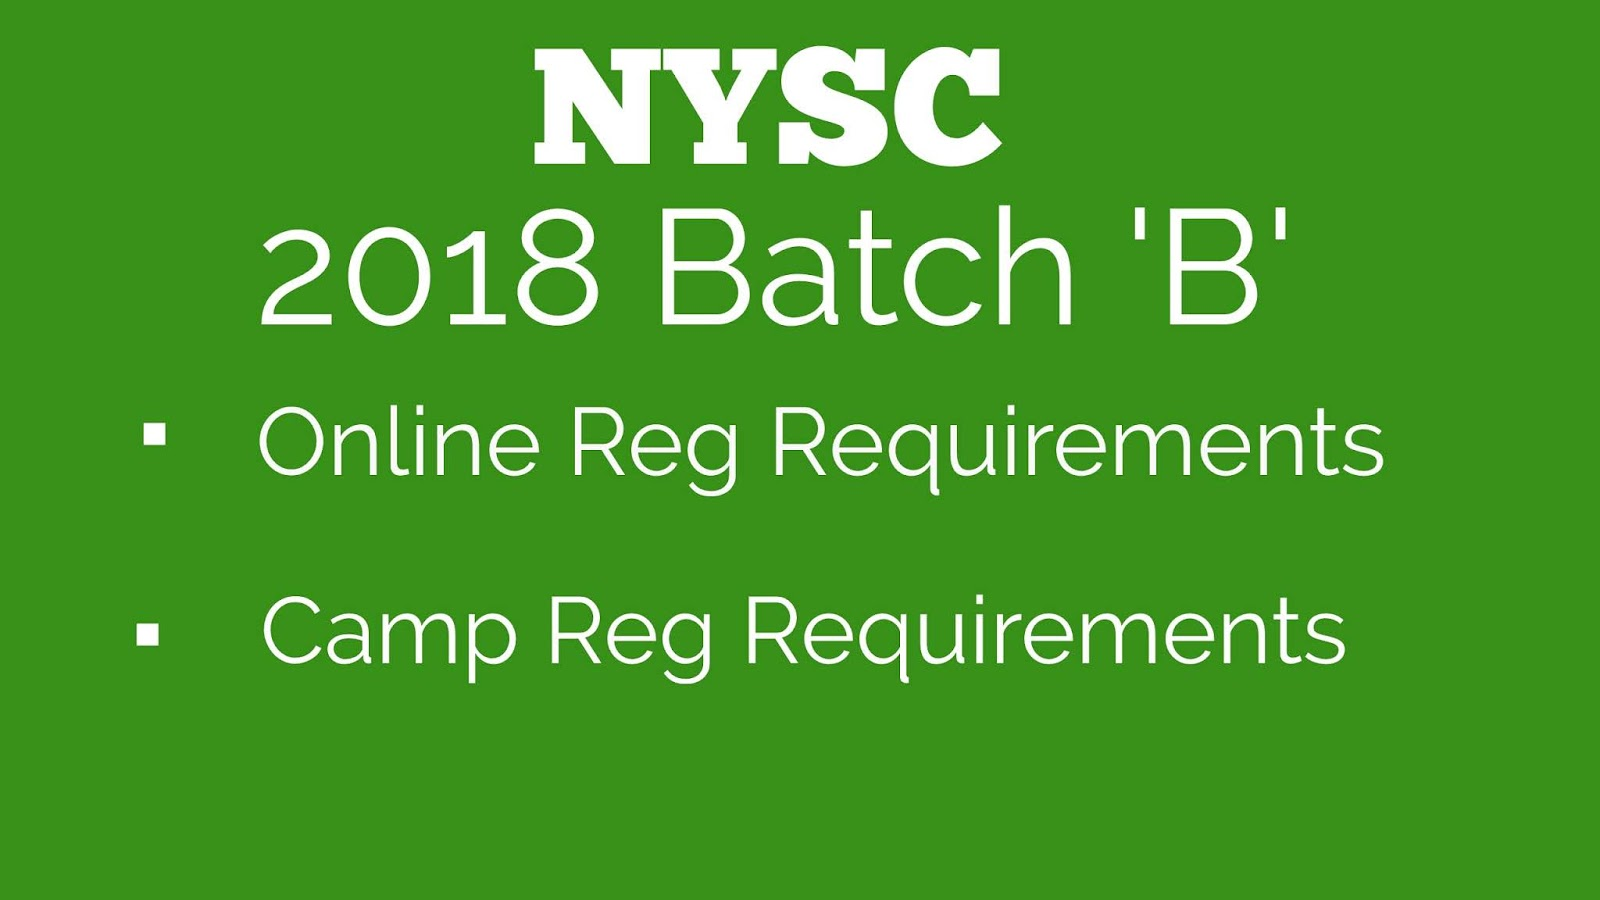 NYSC Online Registration for Batch 'B' Mobilization 2018